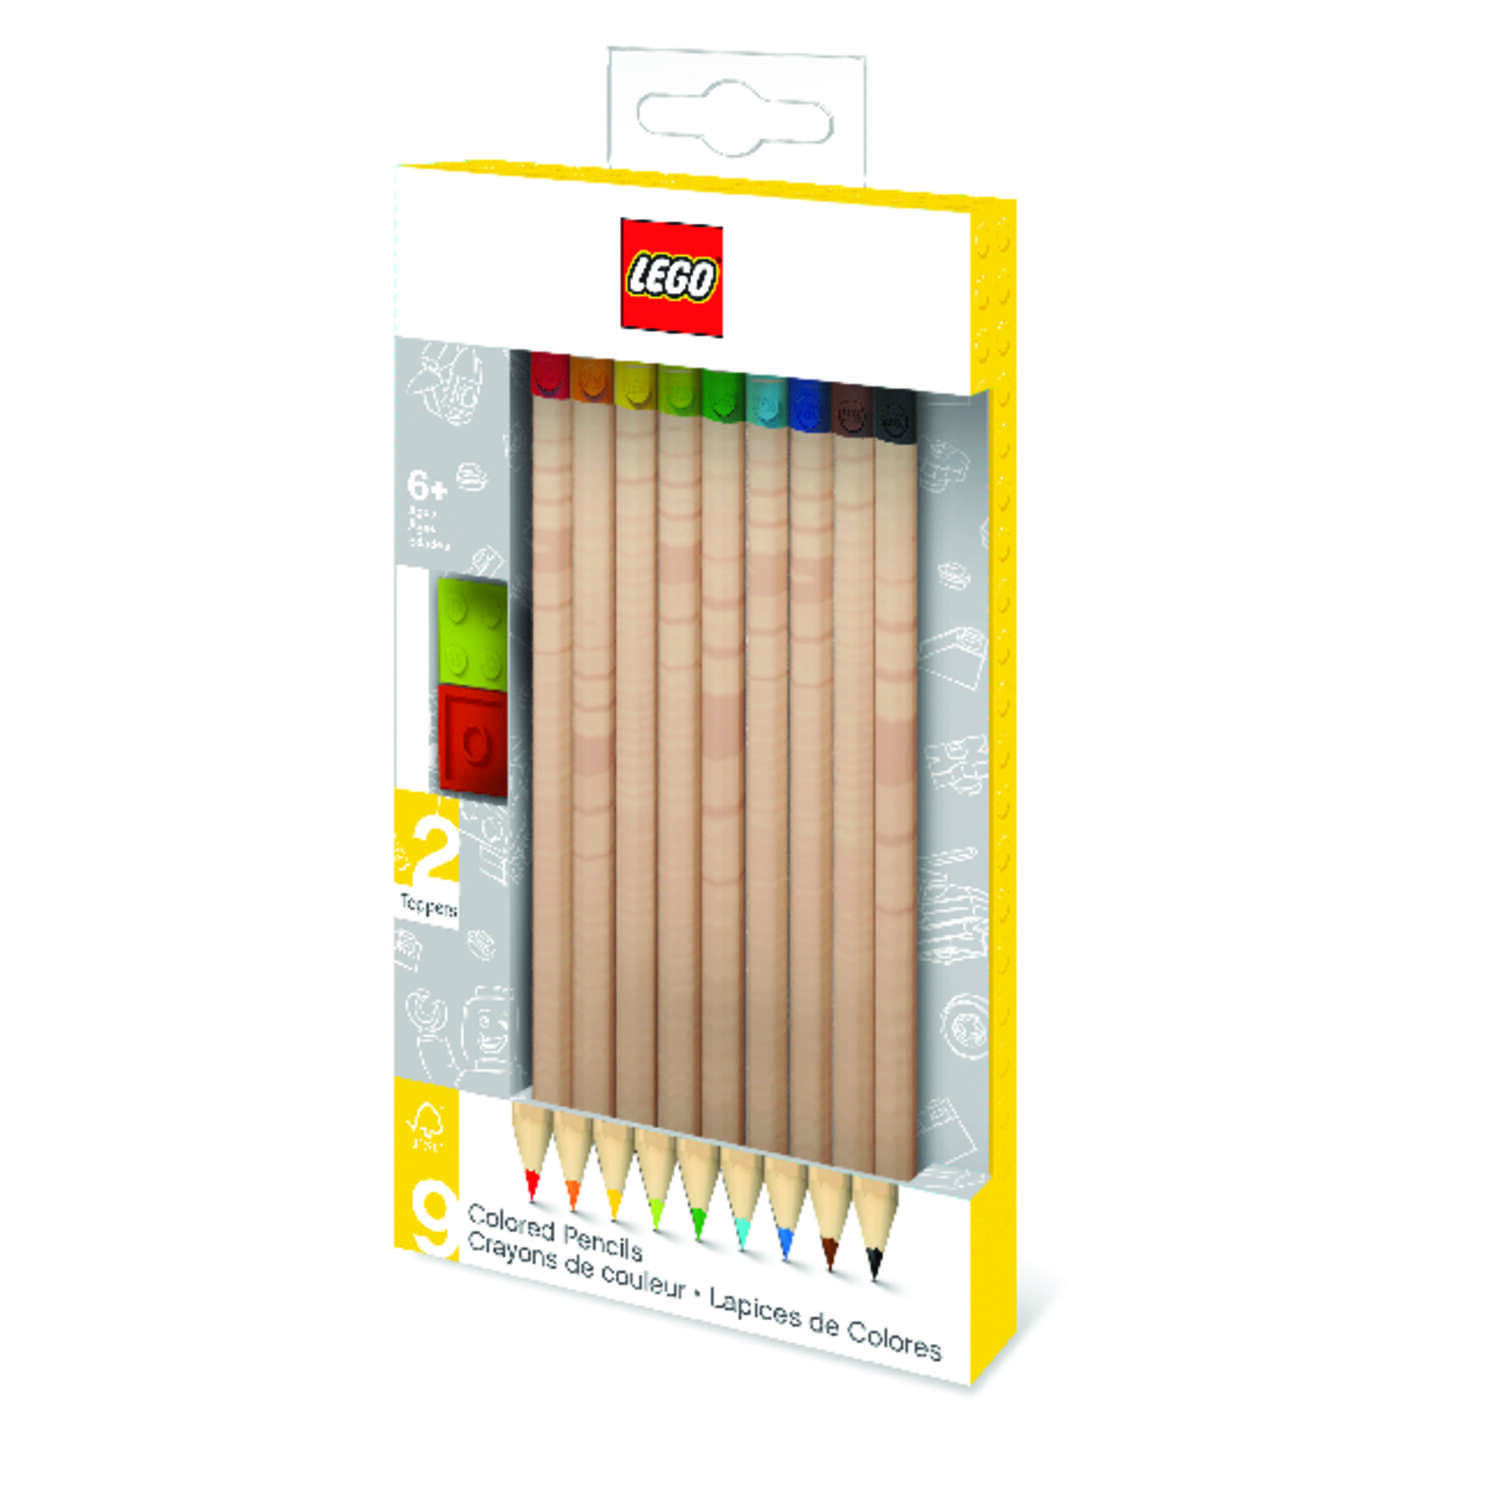 Lego Colored Pencil 9 pk